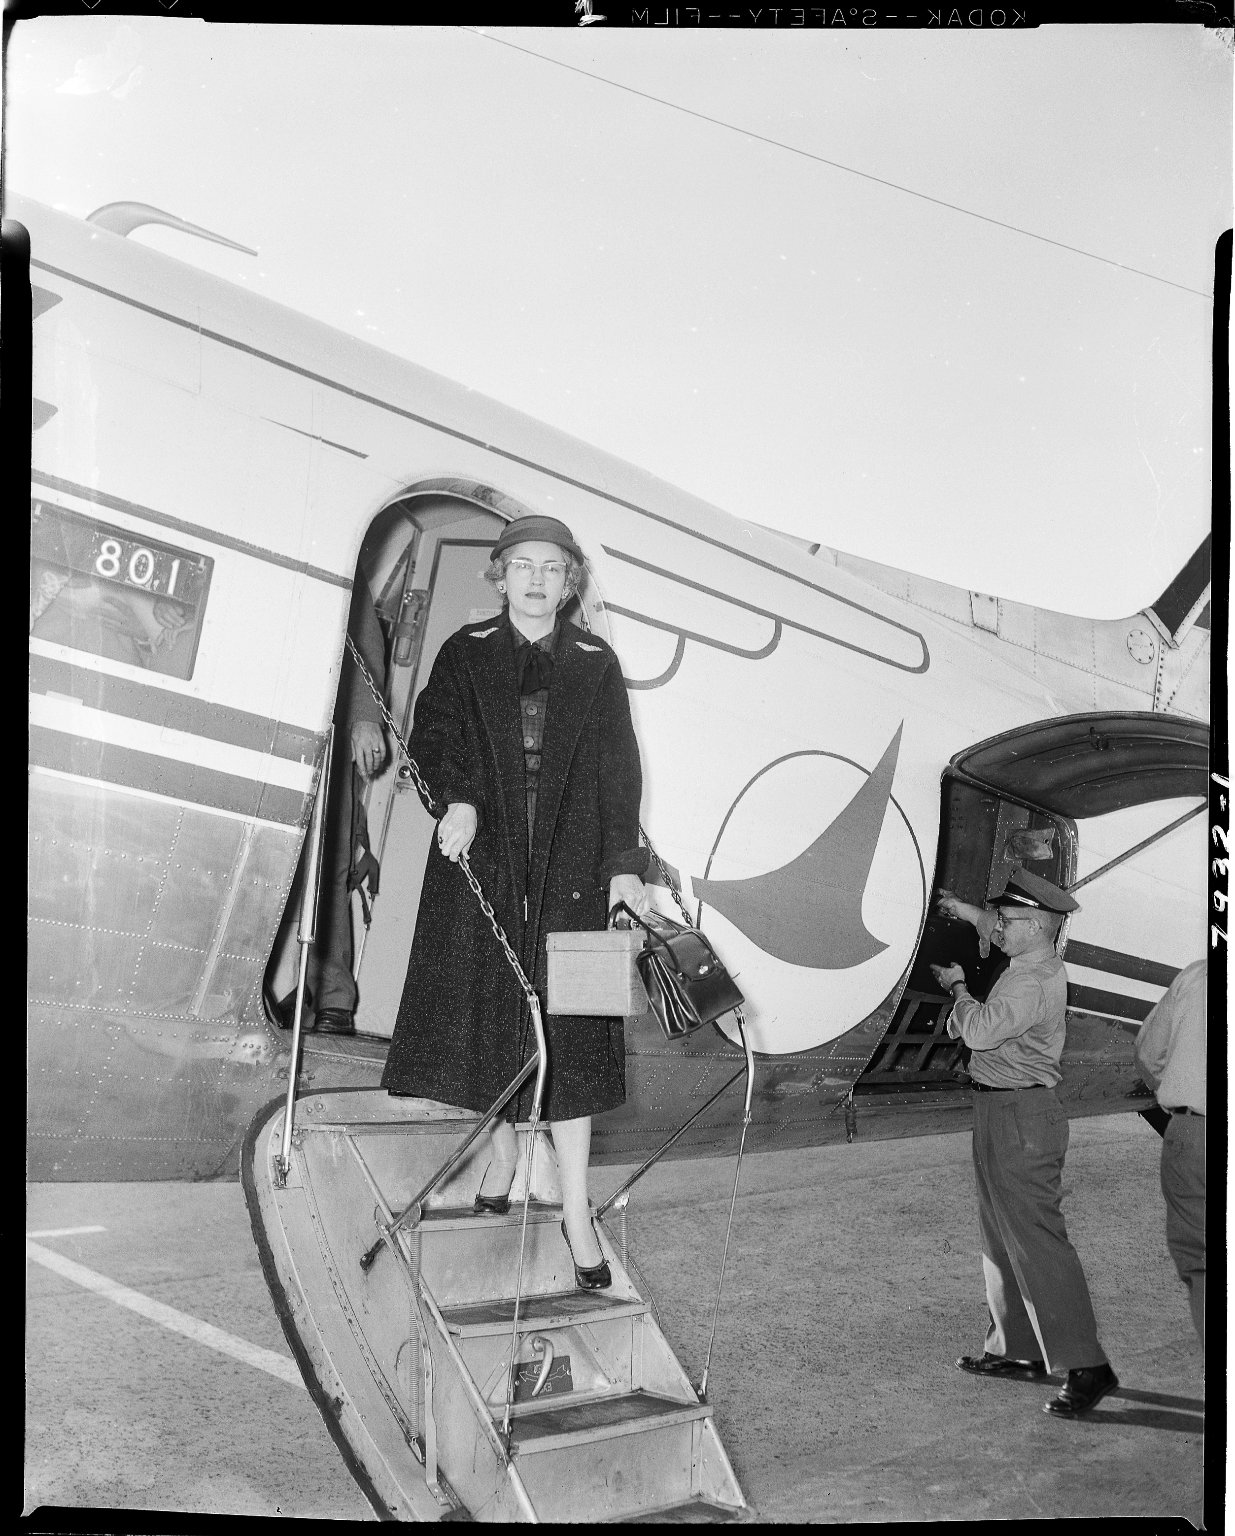 Gussie Rose Case exiting an airplane